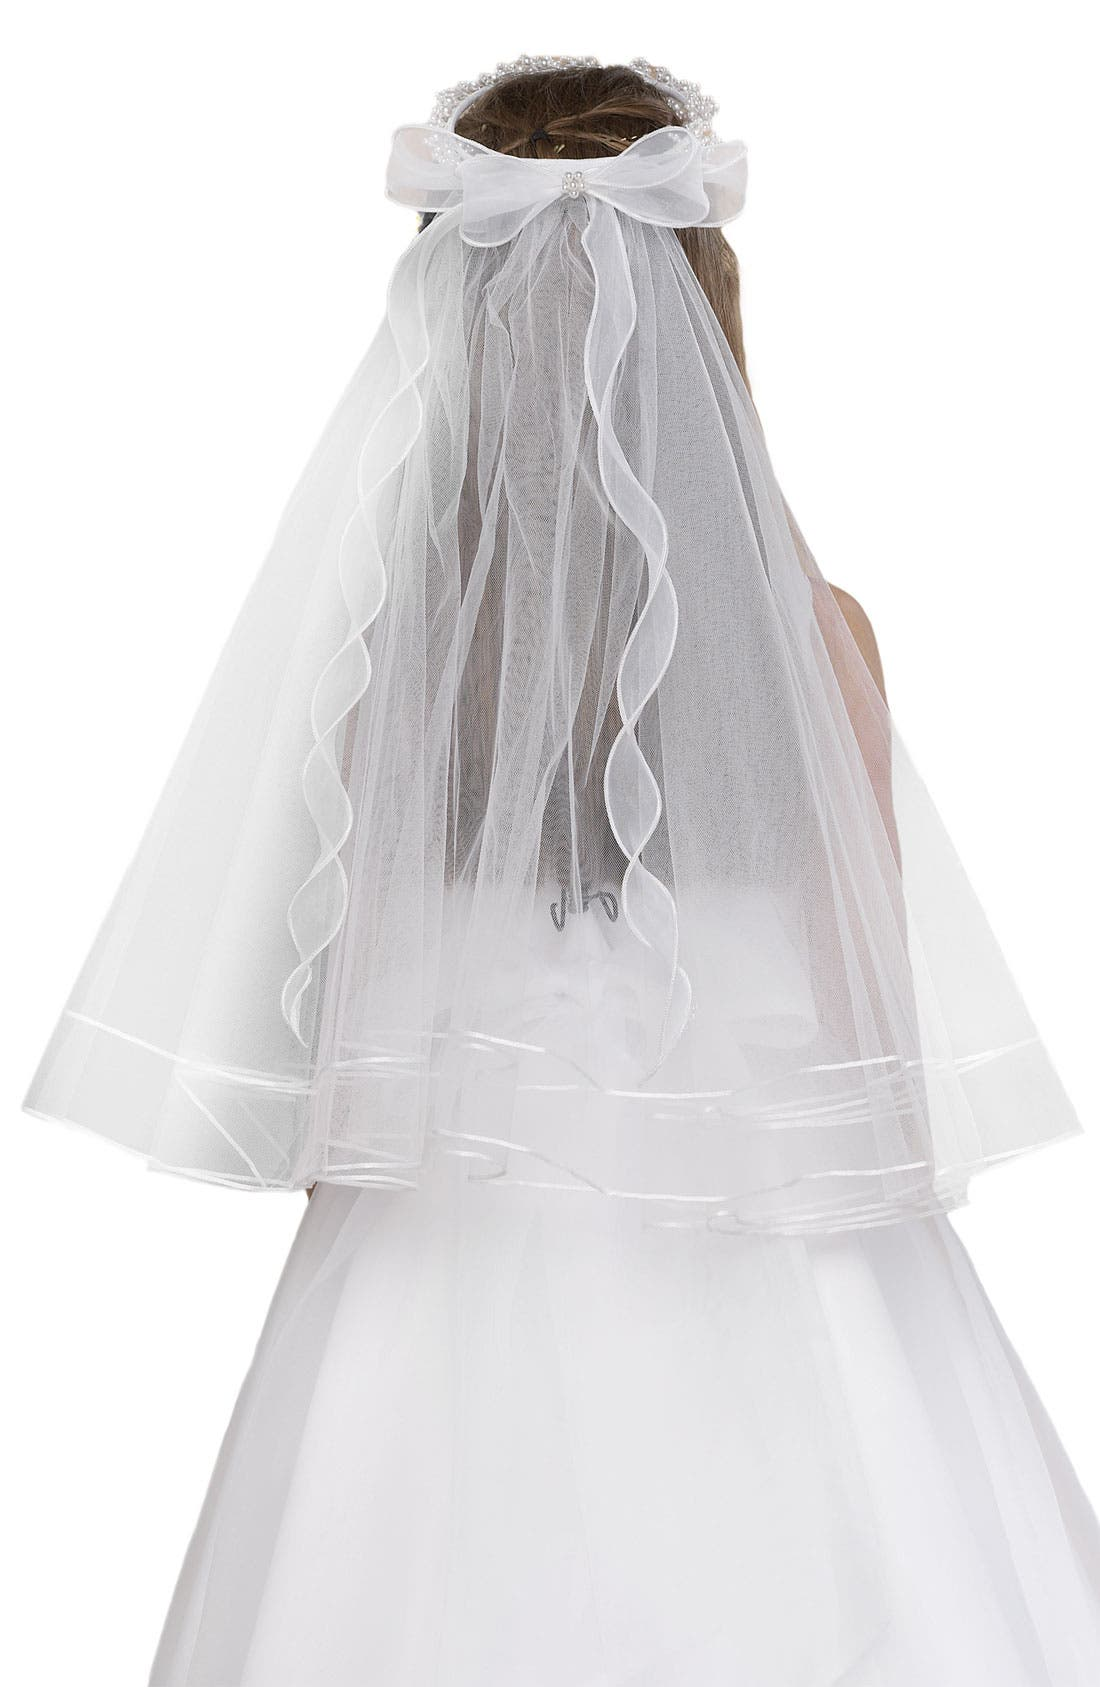 Wreath with Removable Veil,                             Alternate thumbnail 2, color,                             100